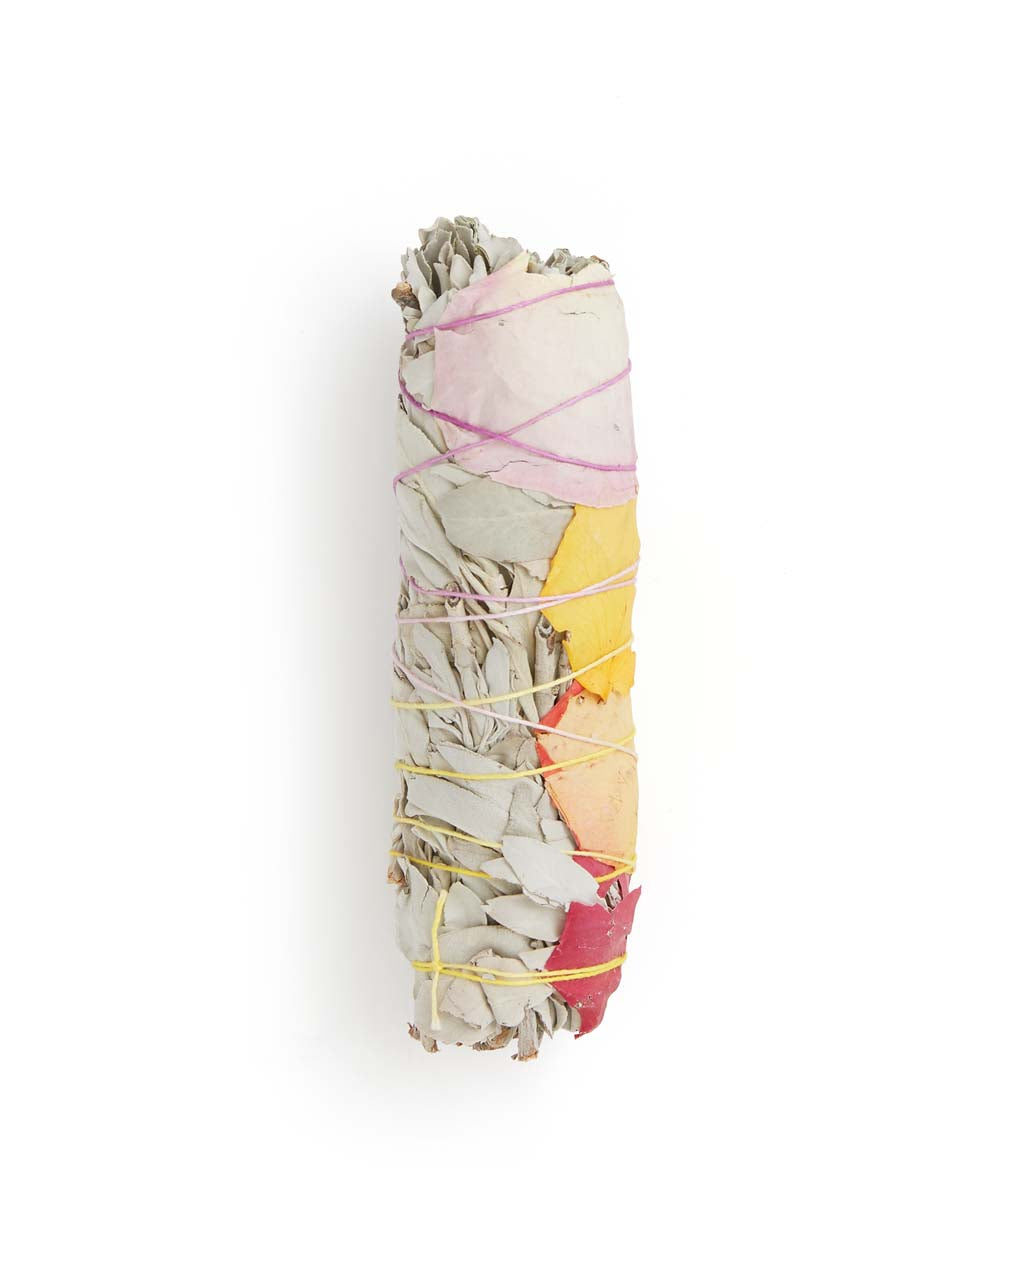 Large White Sage Smudge Stick - Dried Rose Petals